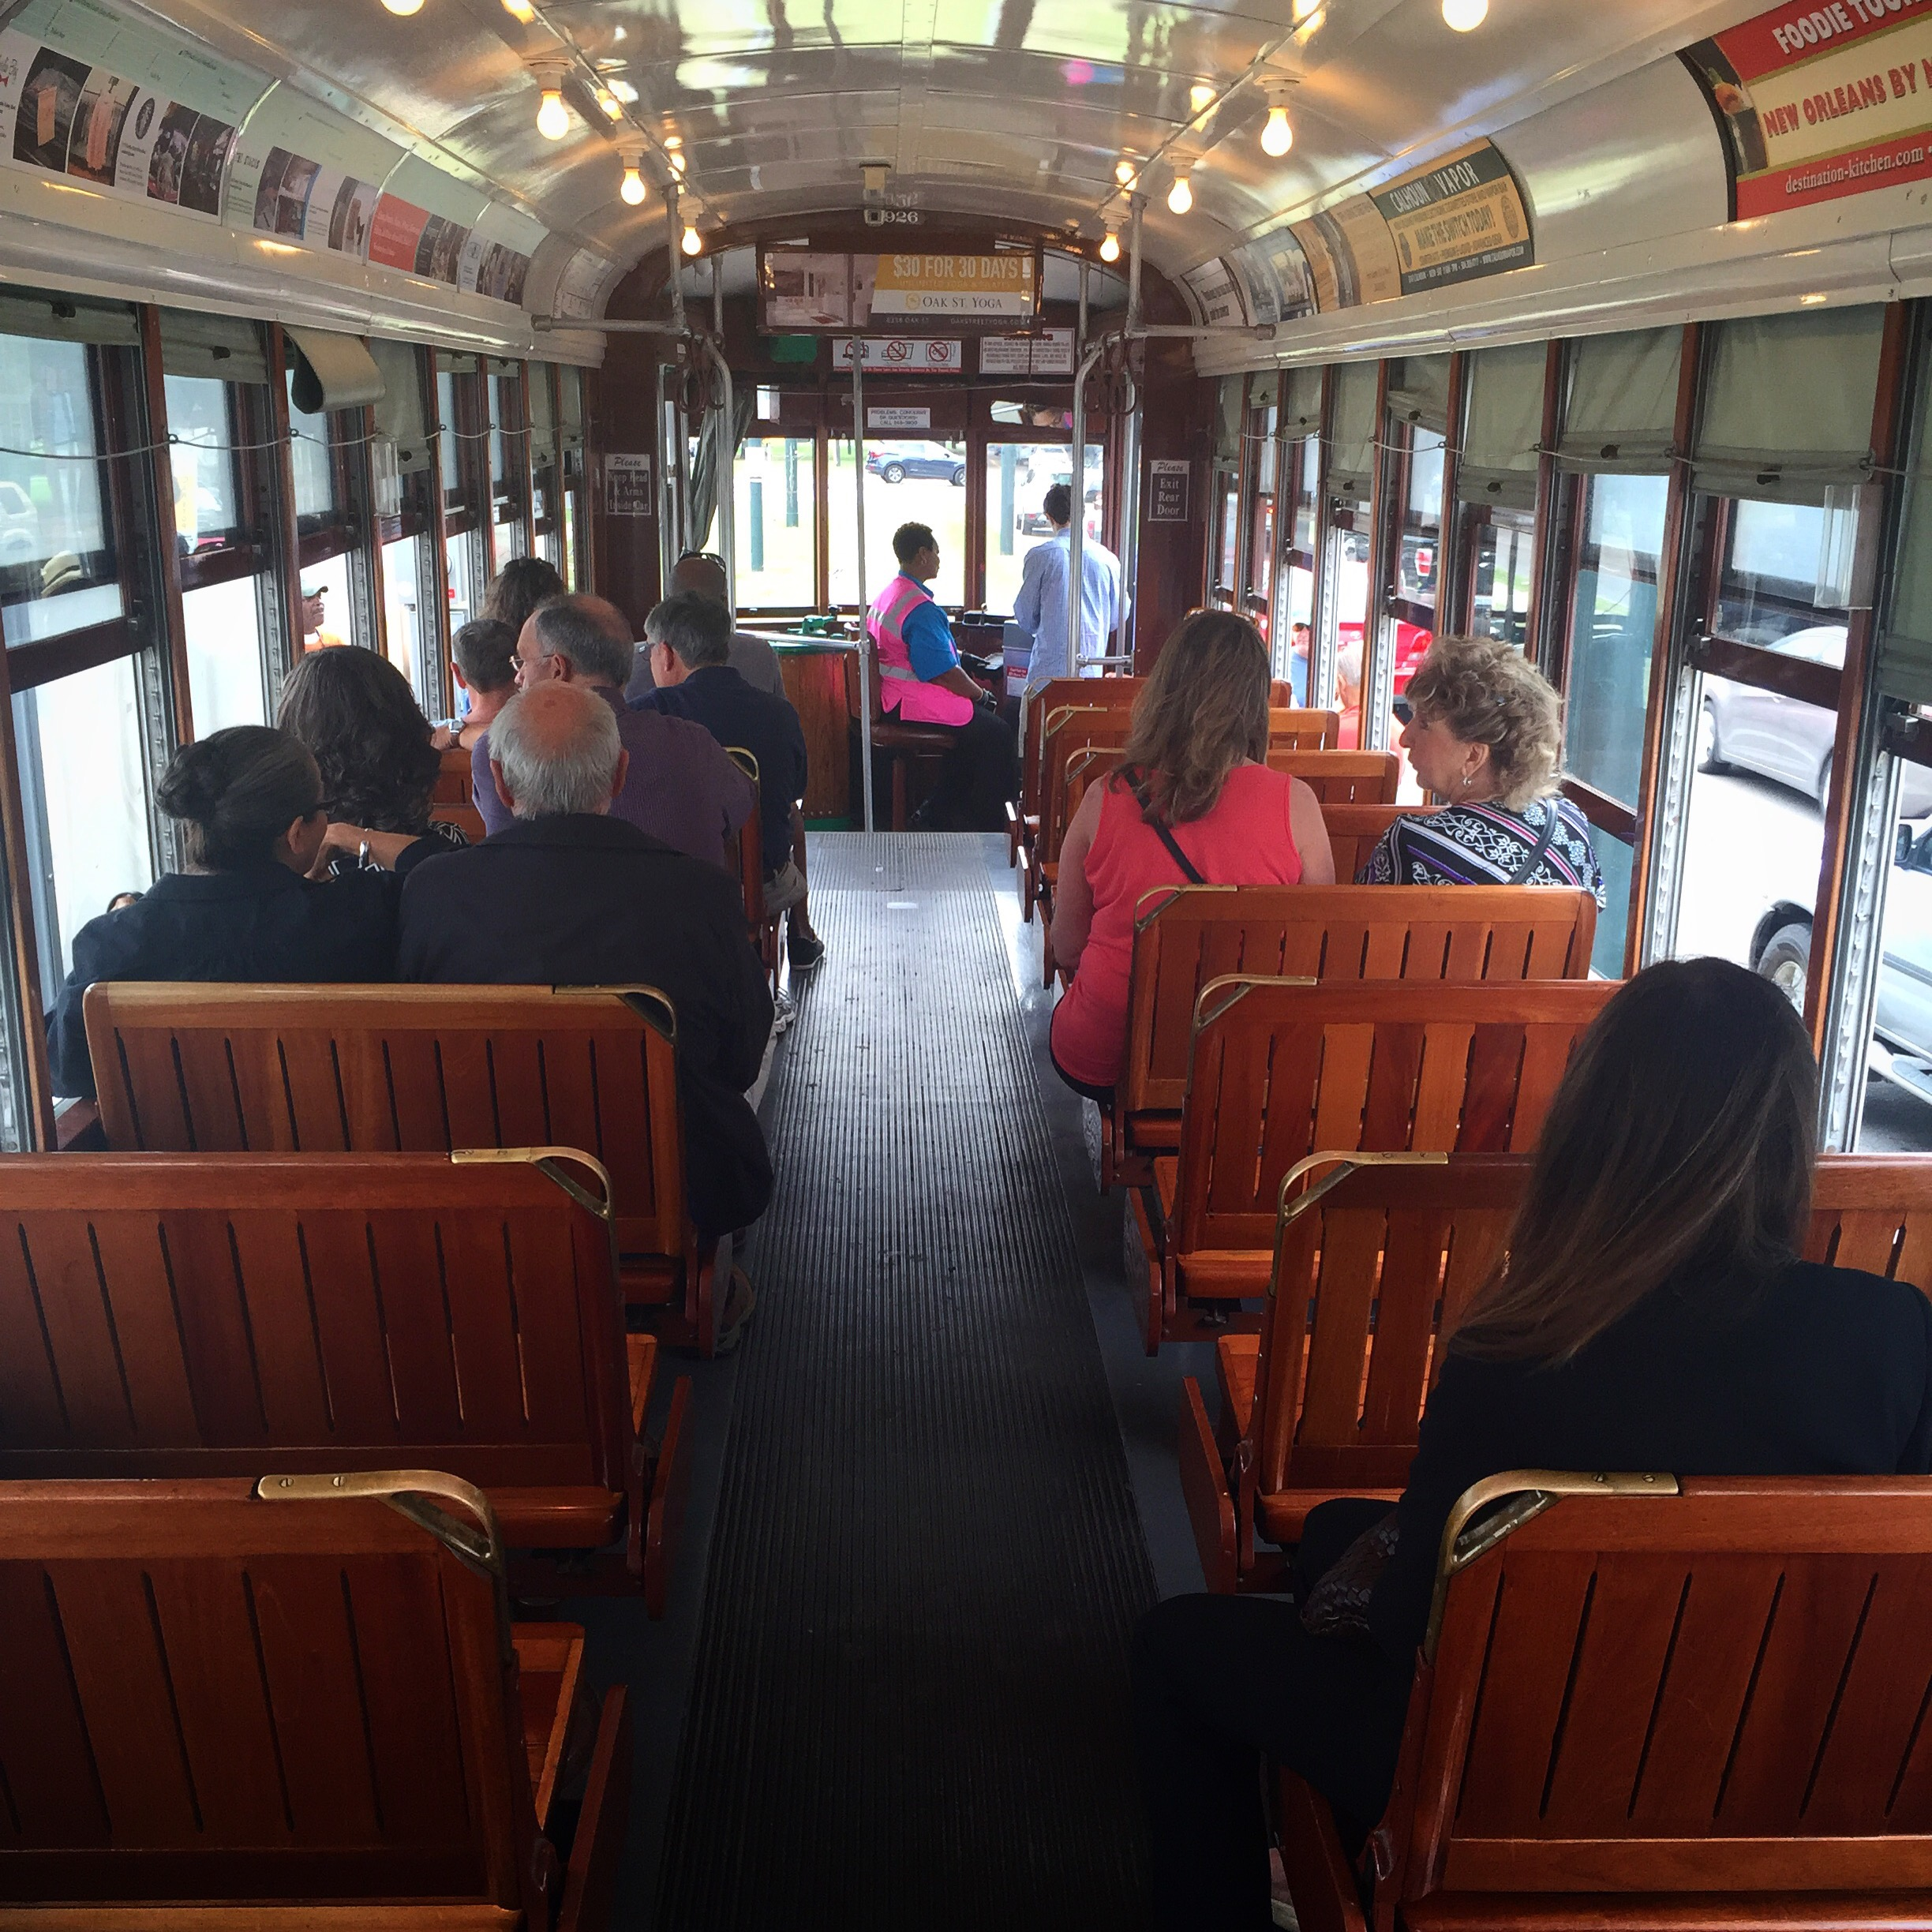 picture of the inside of a trolley car